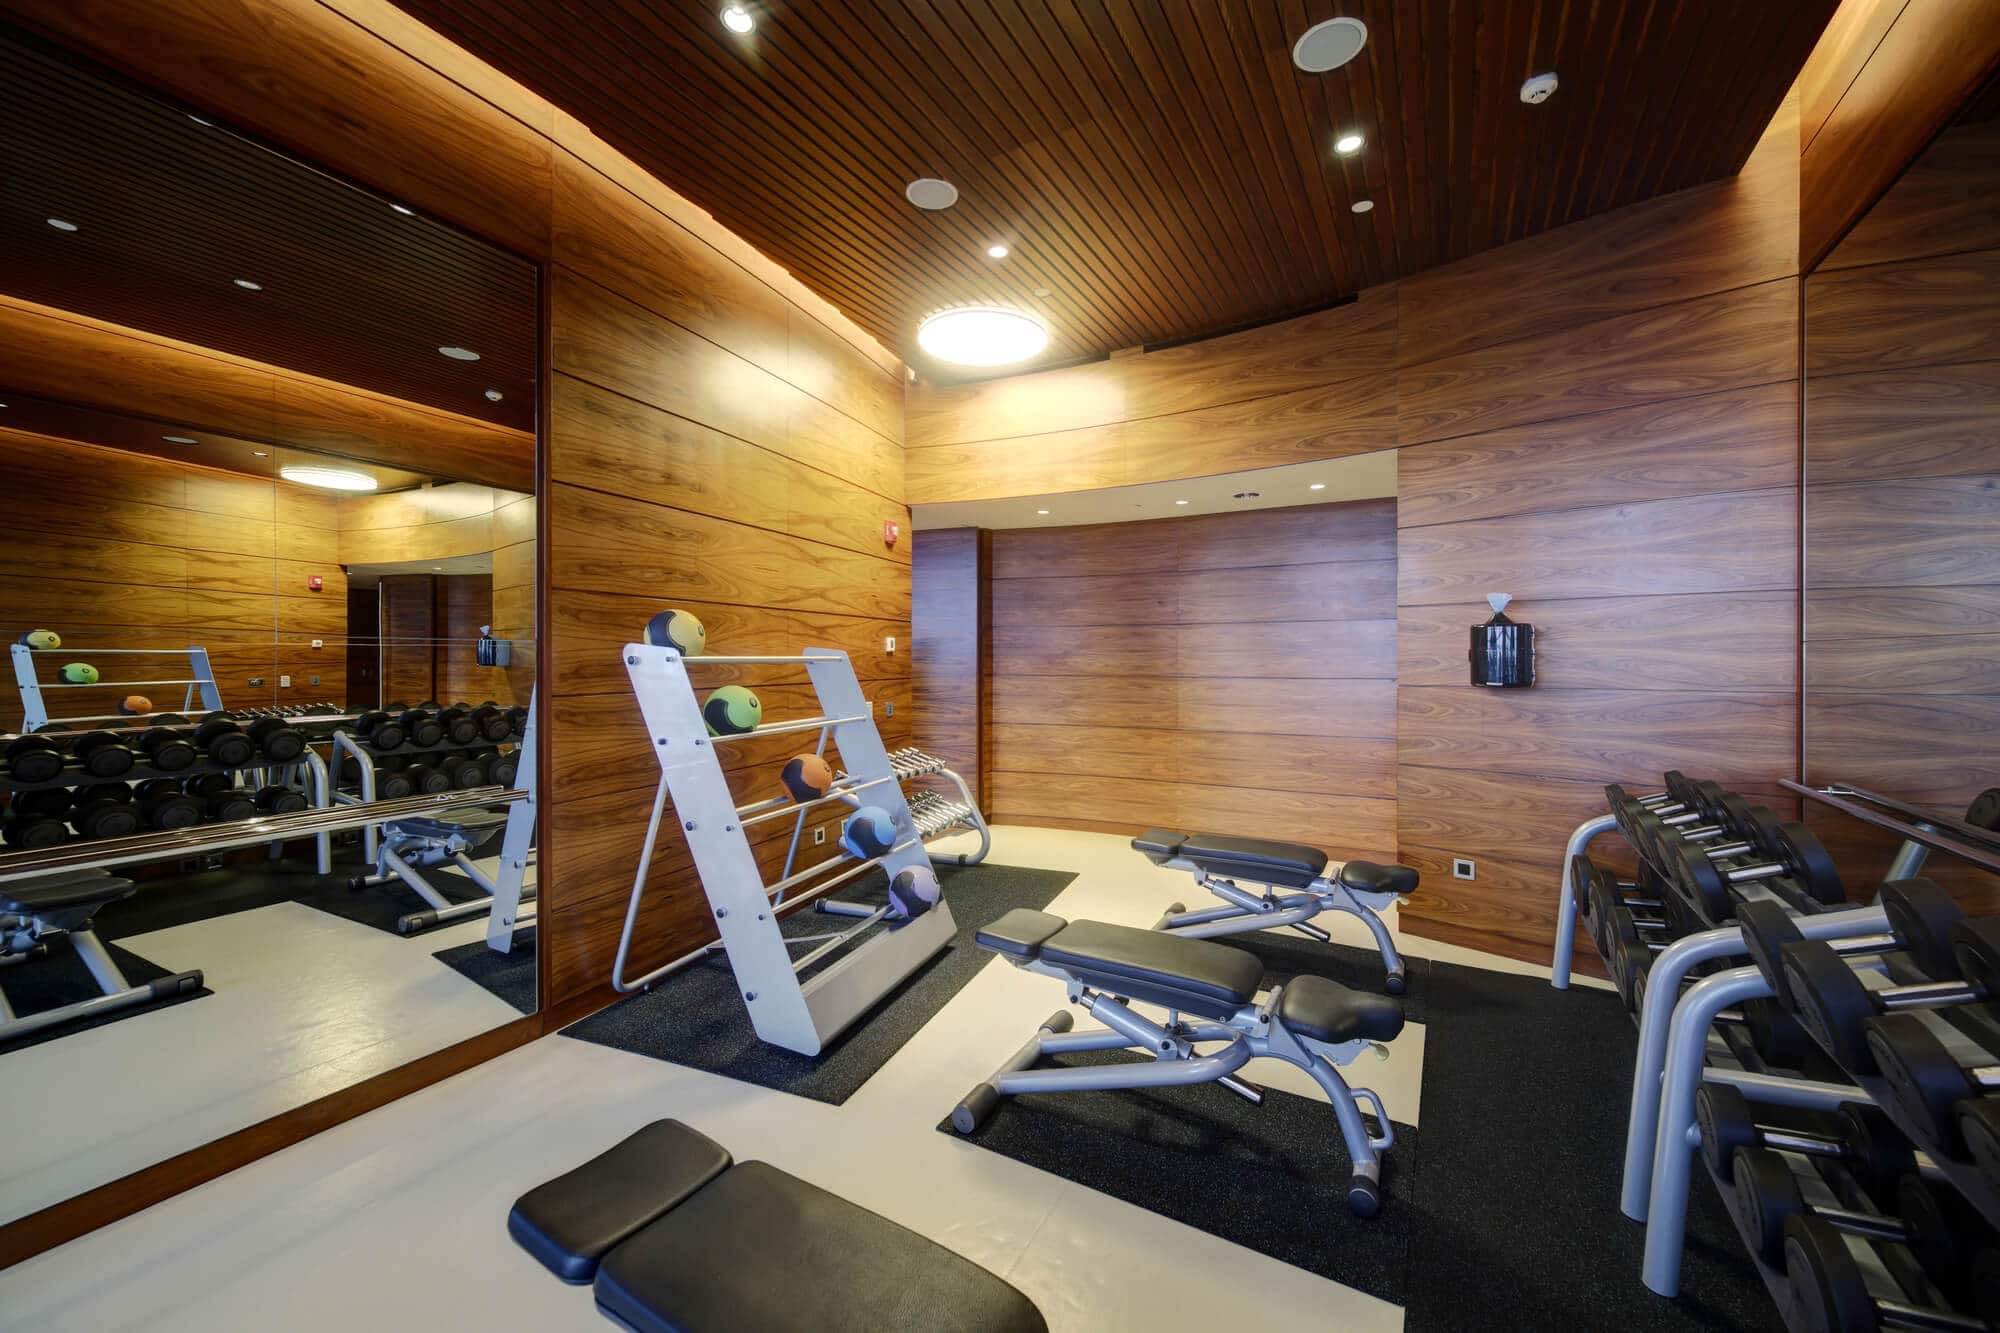 Vacant Sports Gym - Fitness Expo